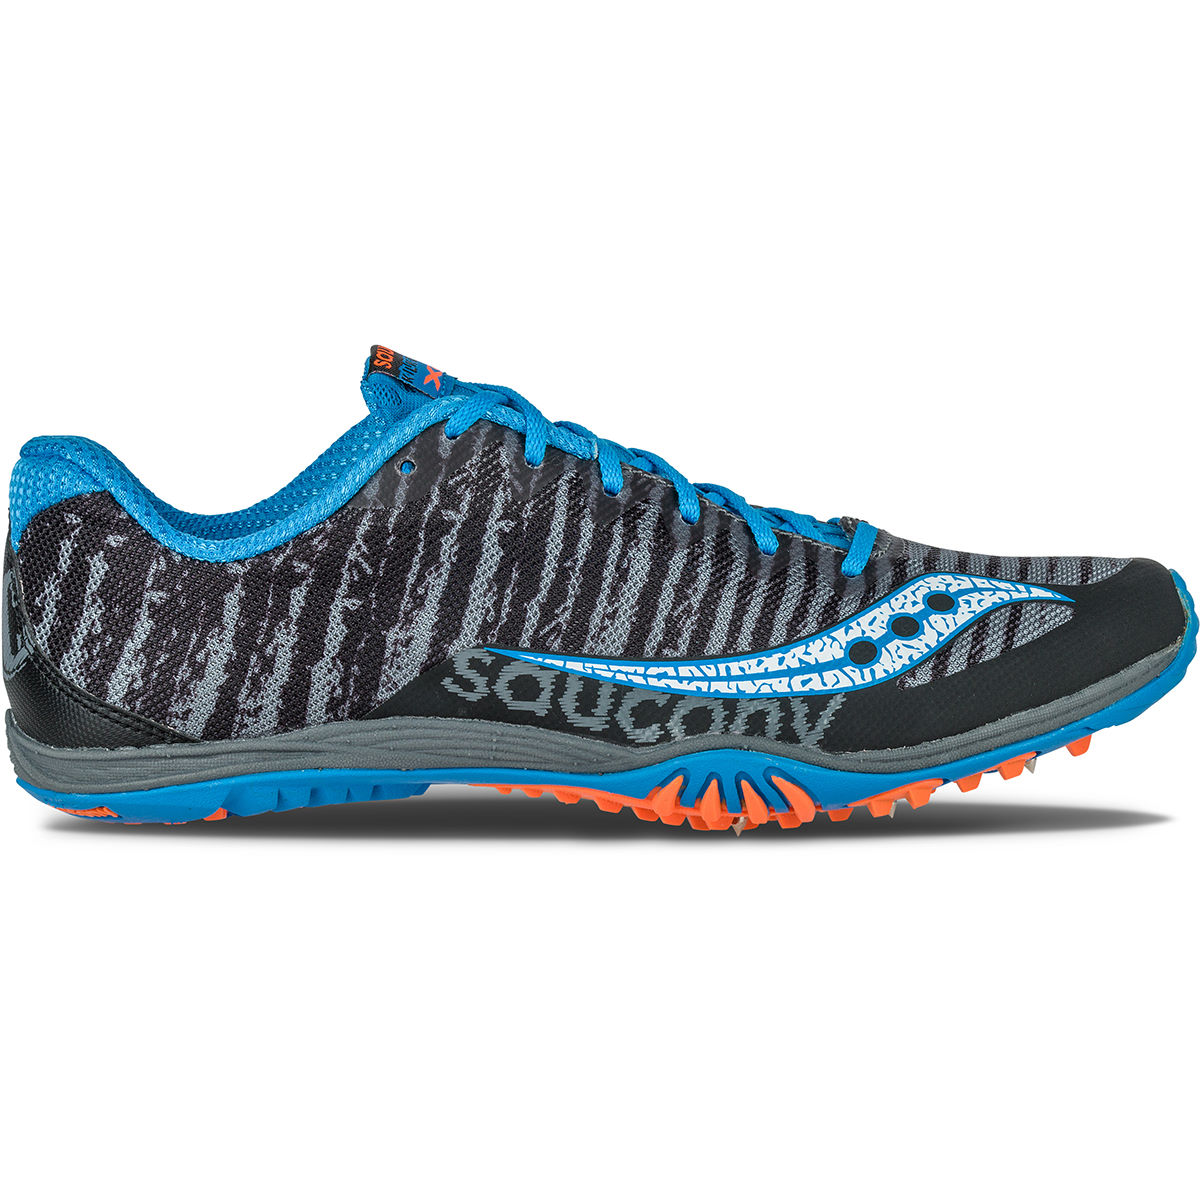 chaussures de running pointes saucony kilkenny xc shoes aw16 wiggle france. Black Bedroom Furniture Sets. Home Design Ideas